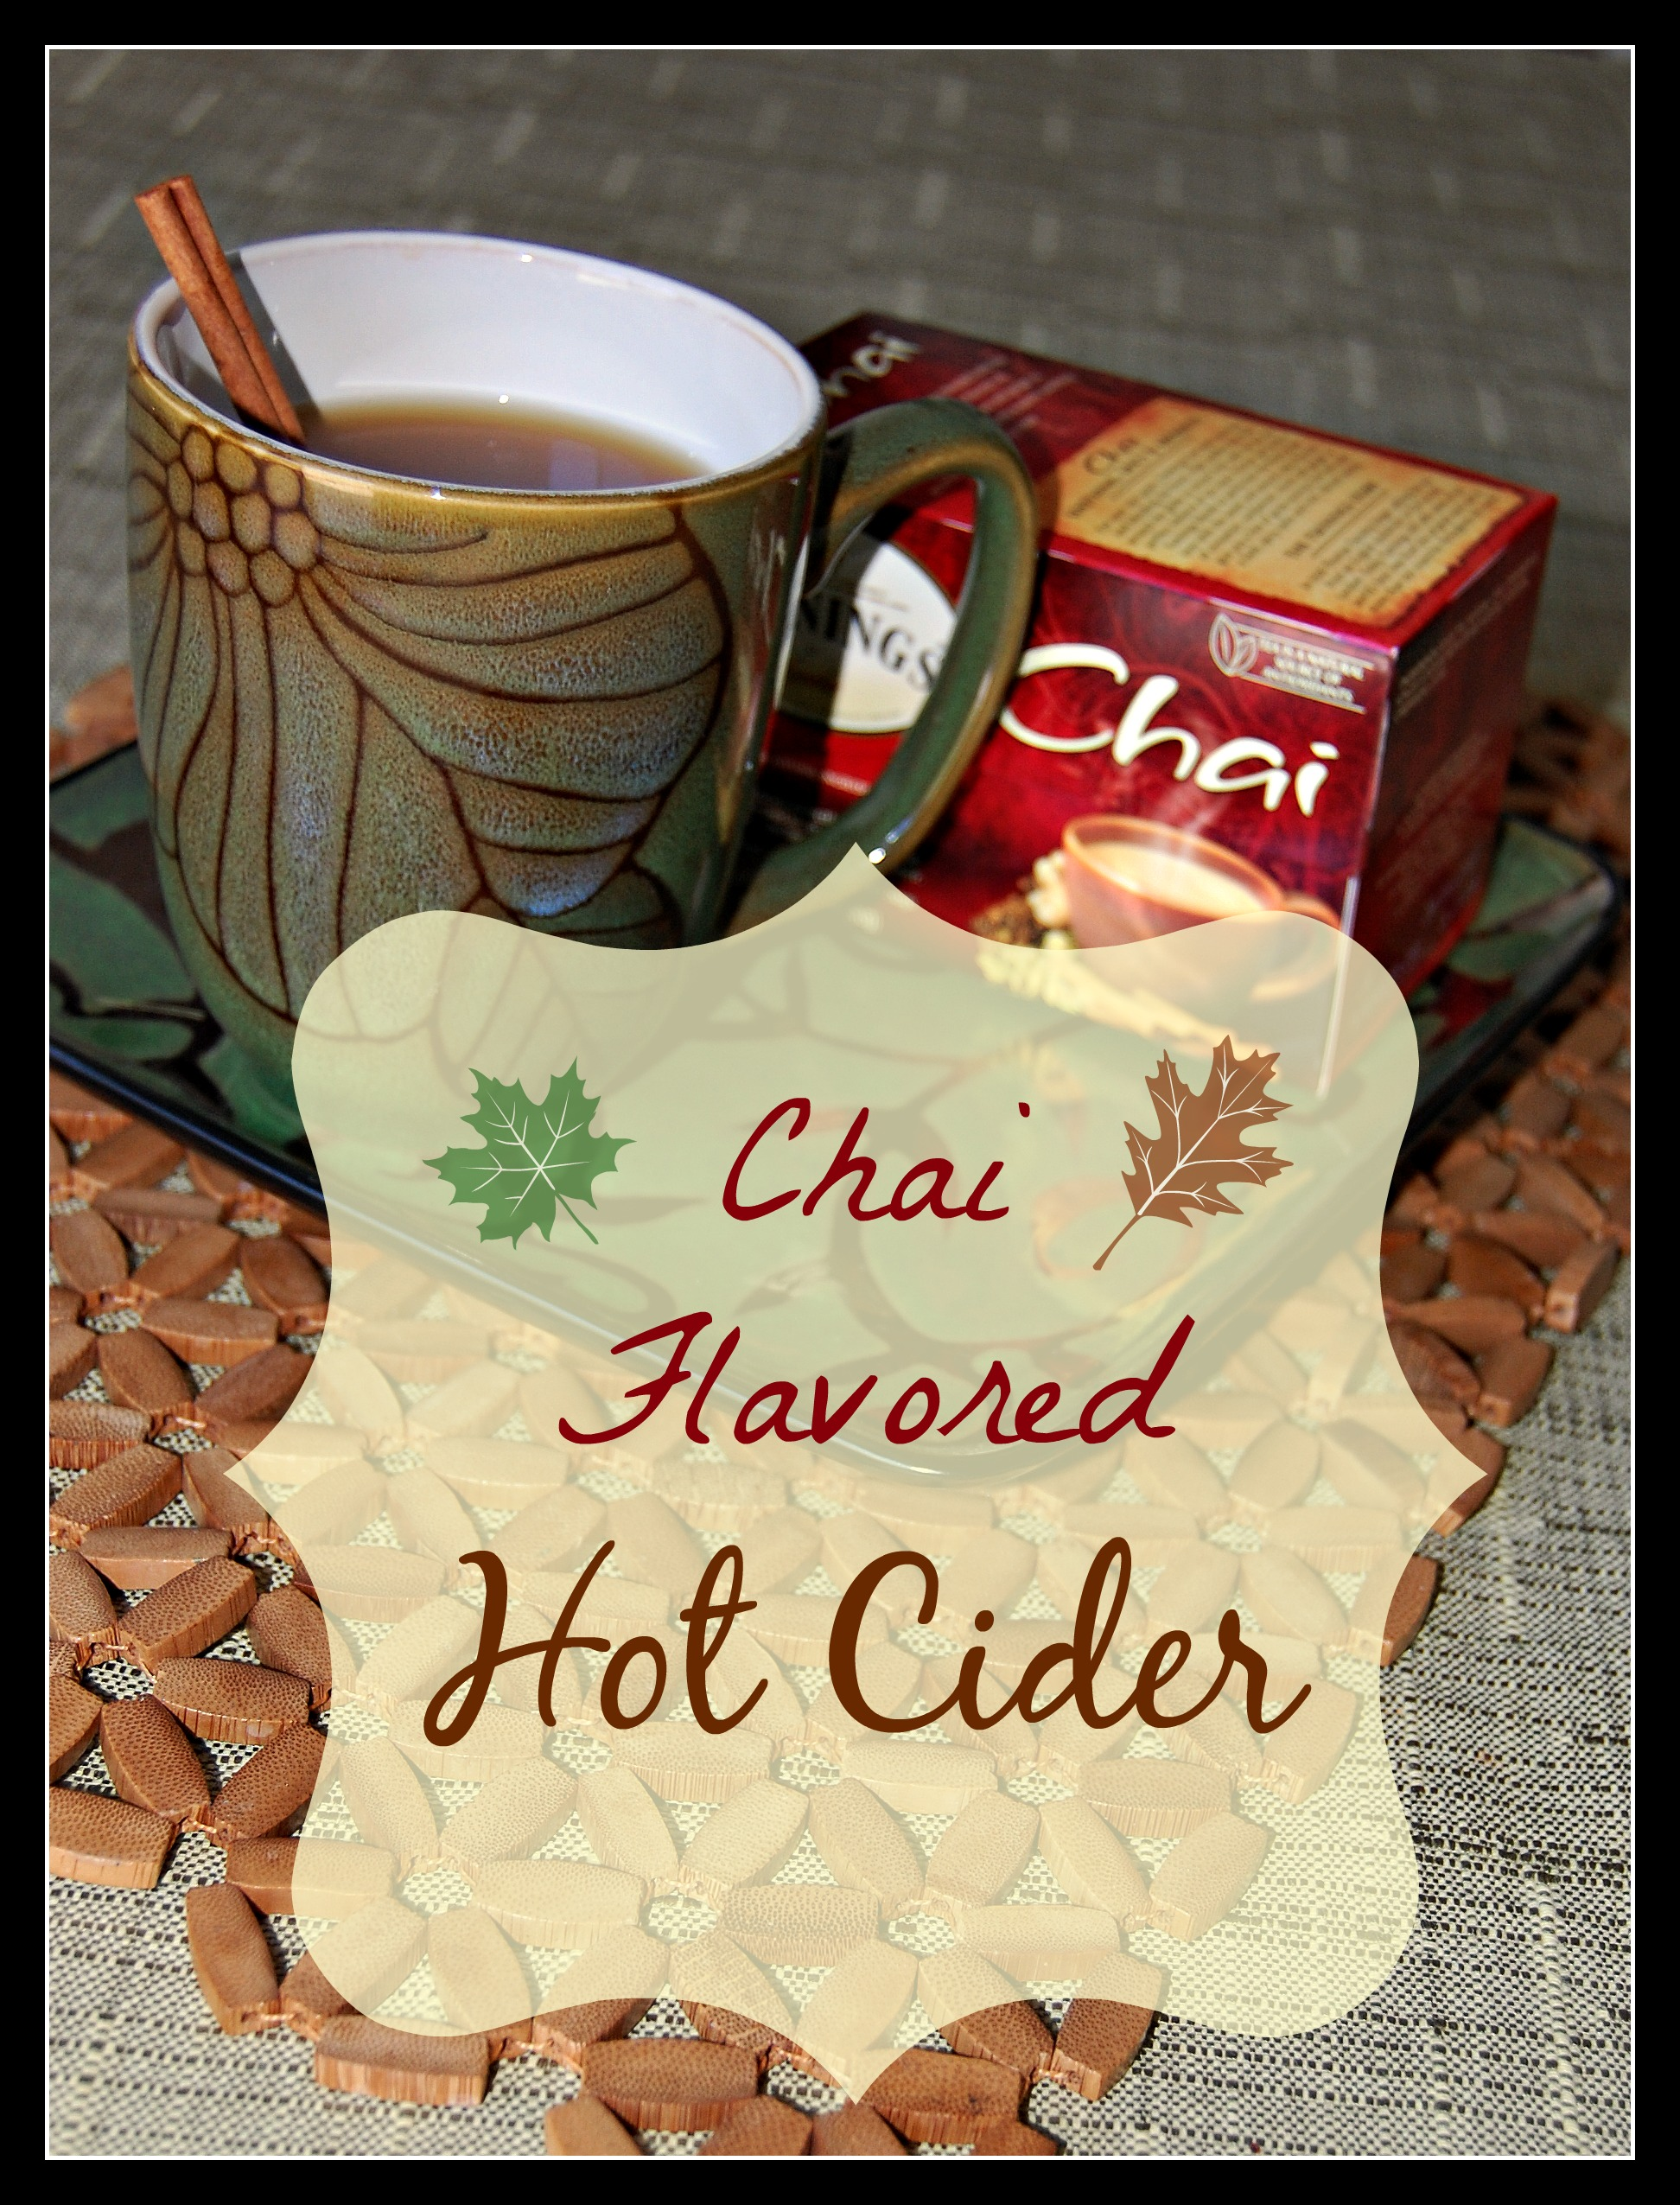 Hot Cider Recipe |  Chai Flavored Hot Cider